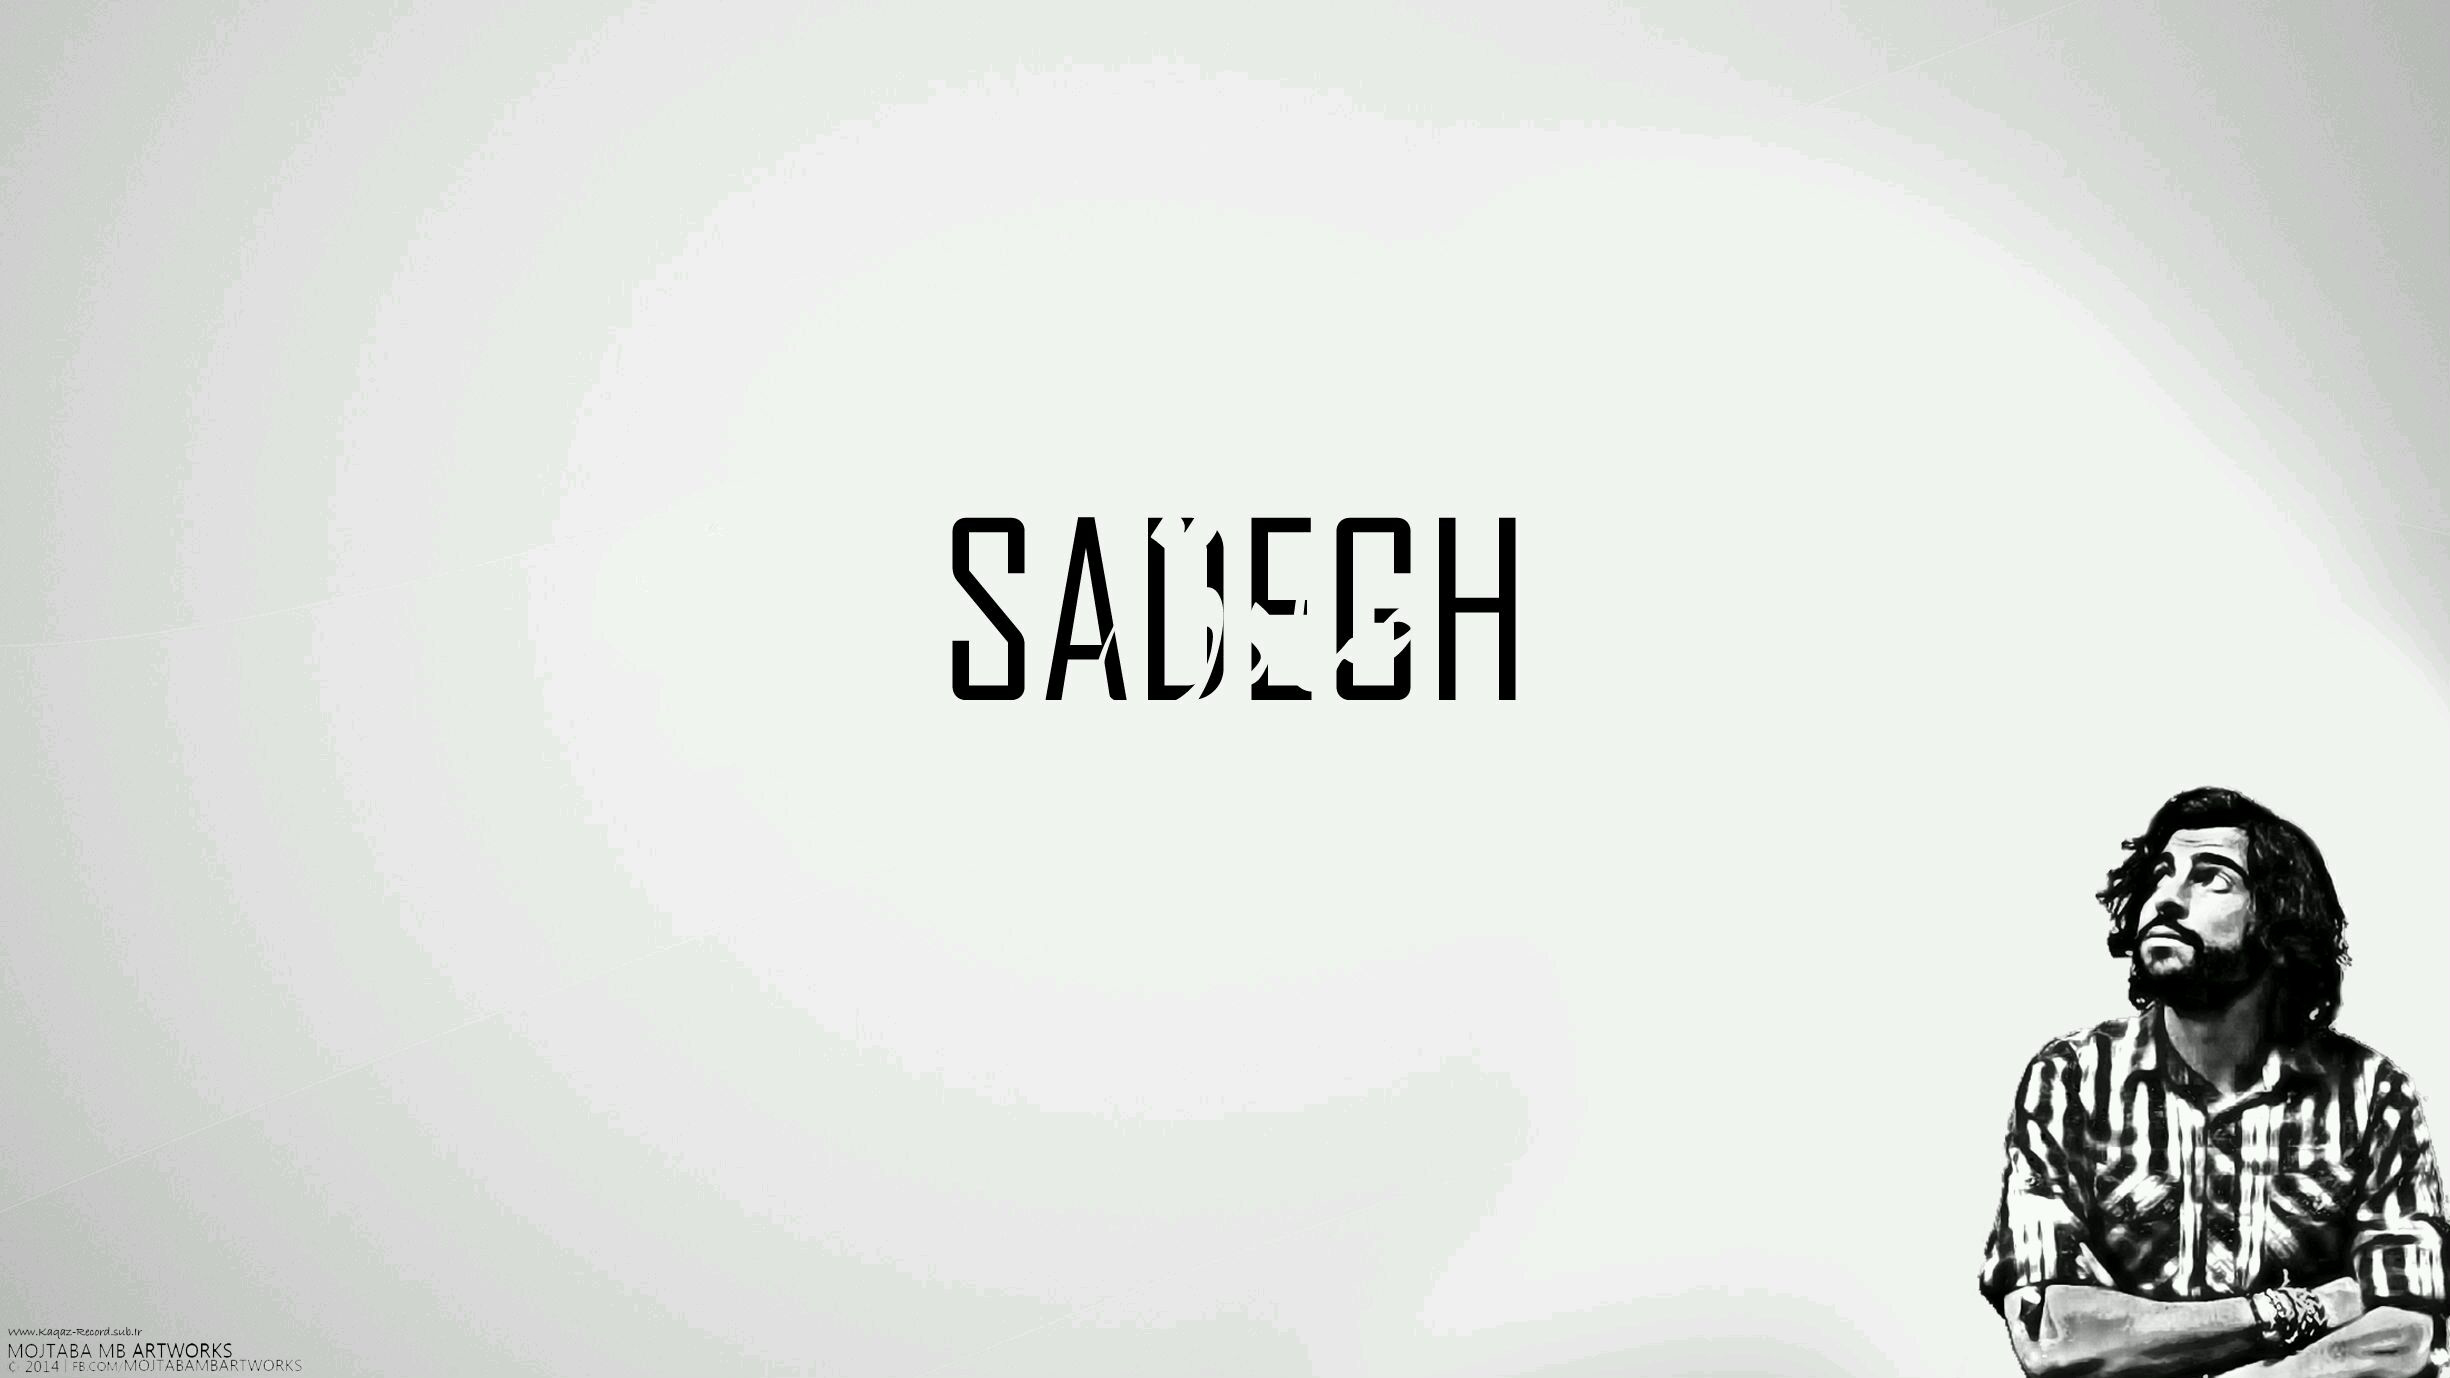 SadeGh Wallpaper 2